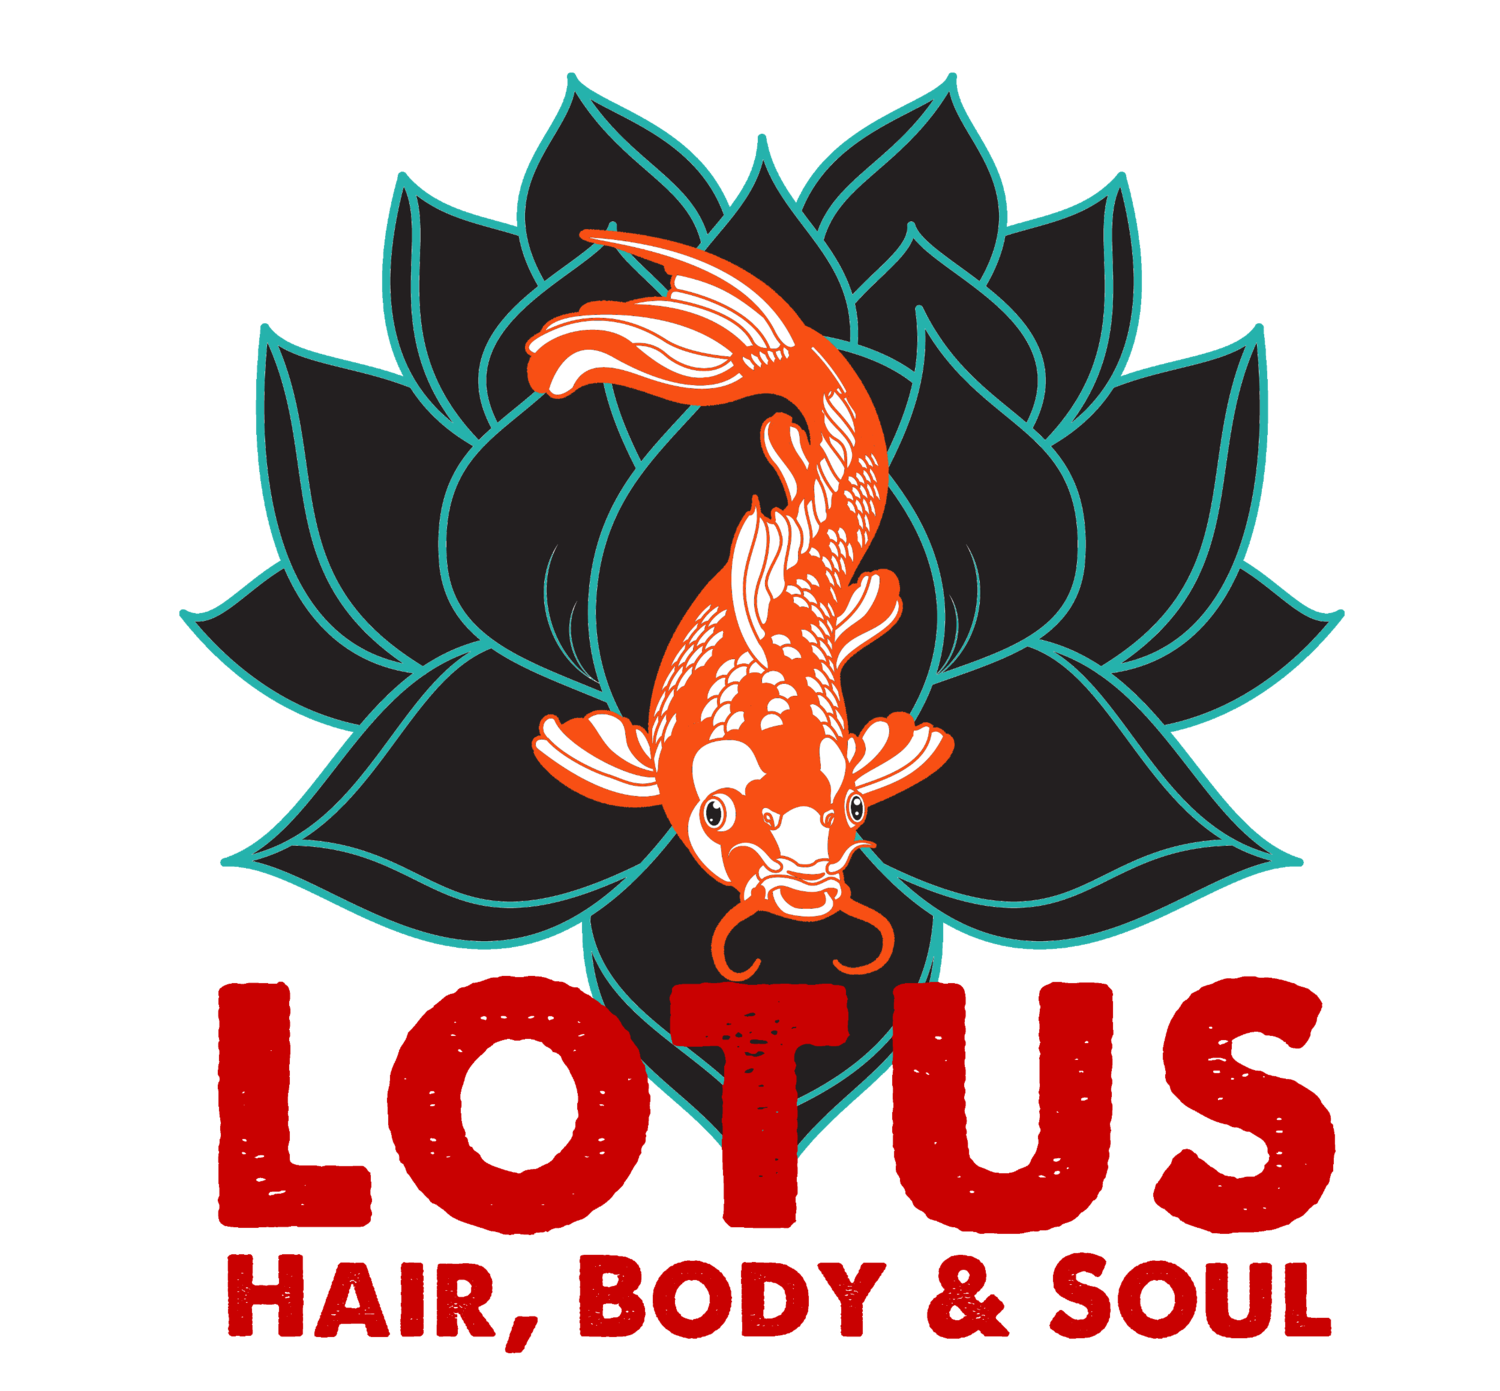 Lotus Hair, Body and Soul offers haircuts, hair color, eyelash extensions, skin care, massage, nails in Medford Oregon.